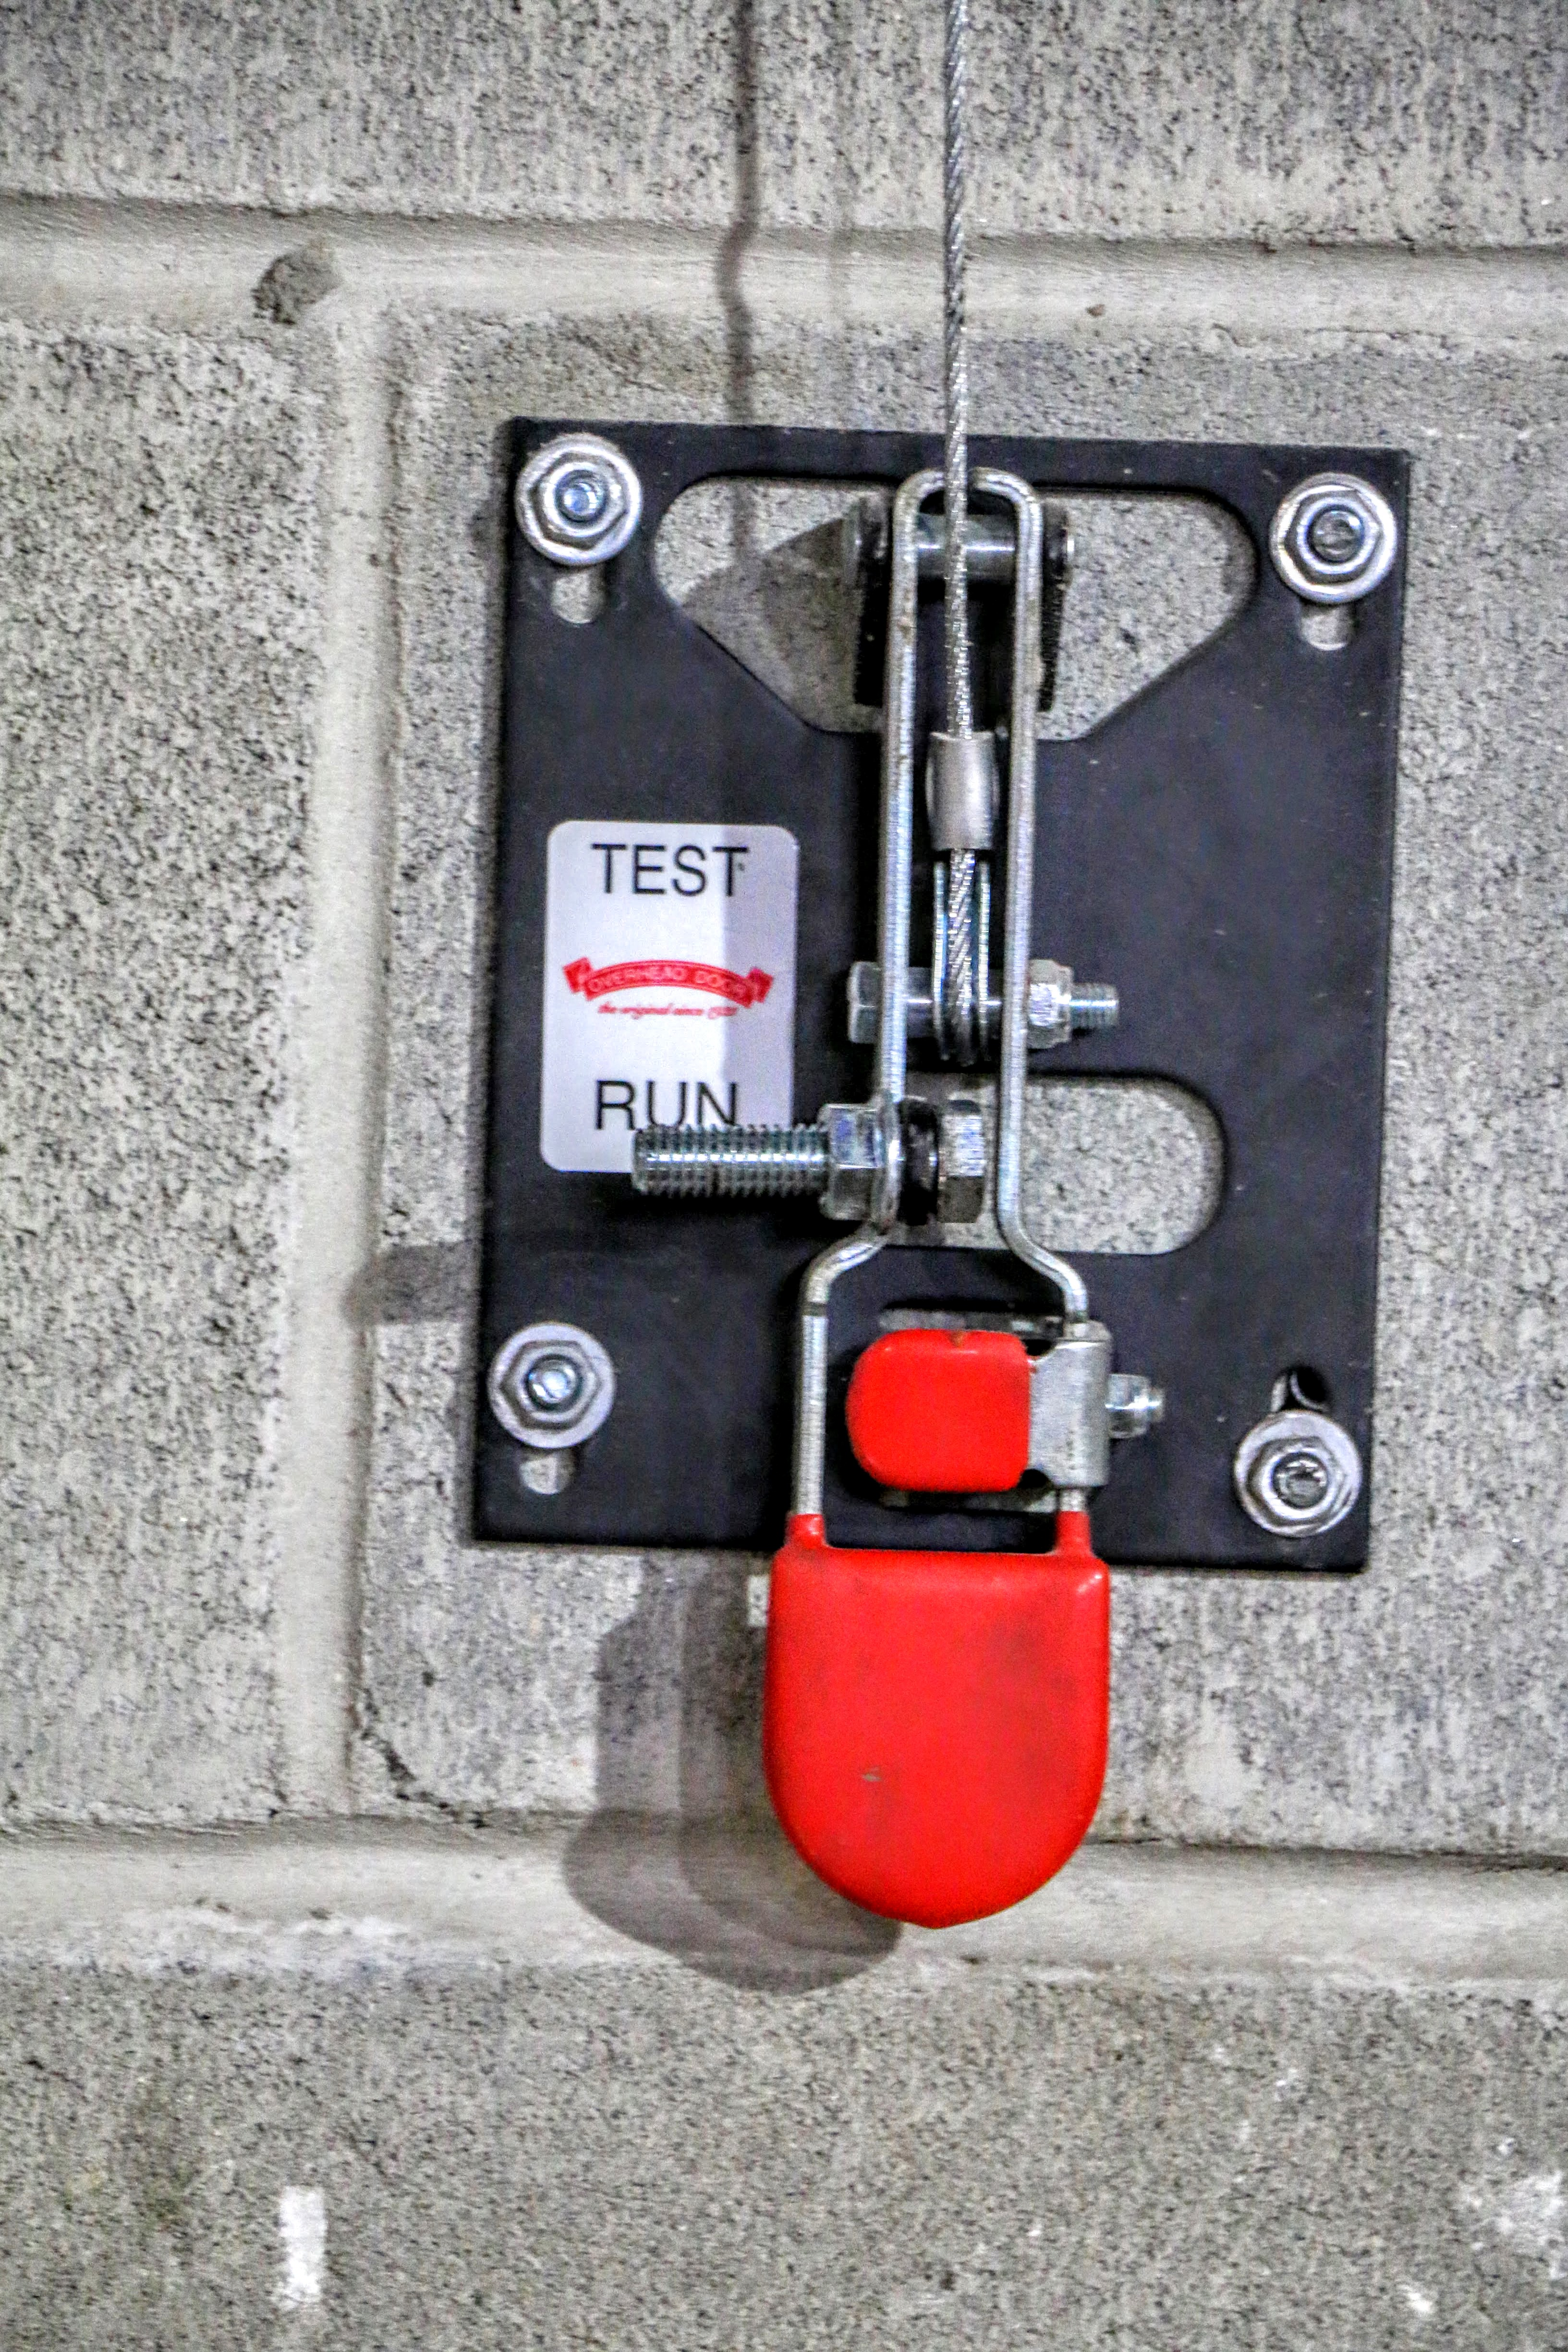 For manually resetting the fire door/gate, this lever is used.